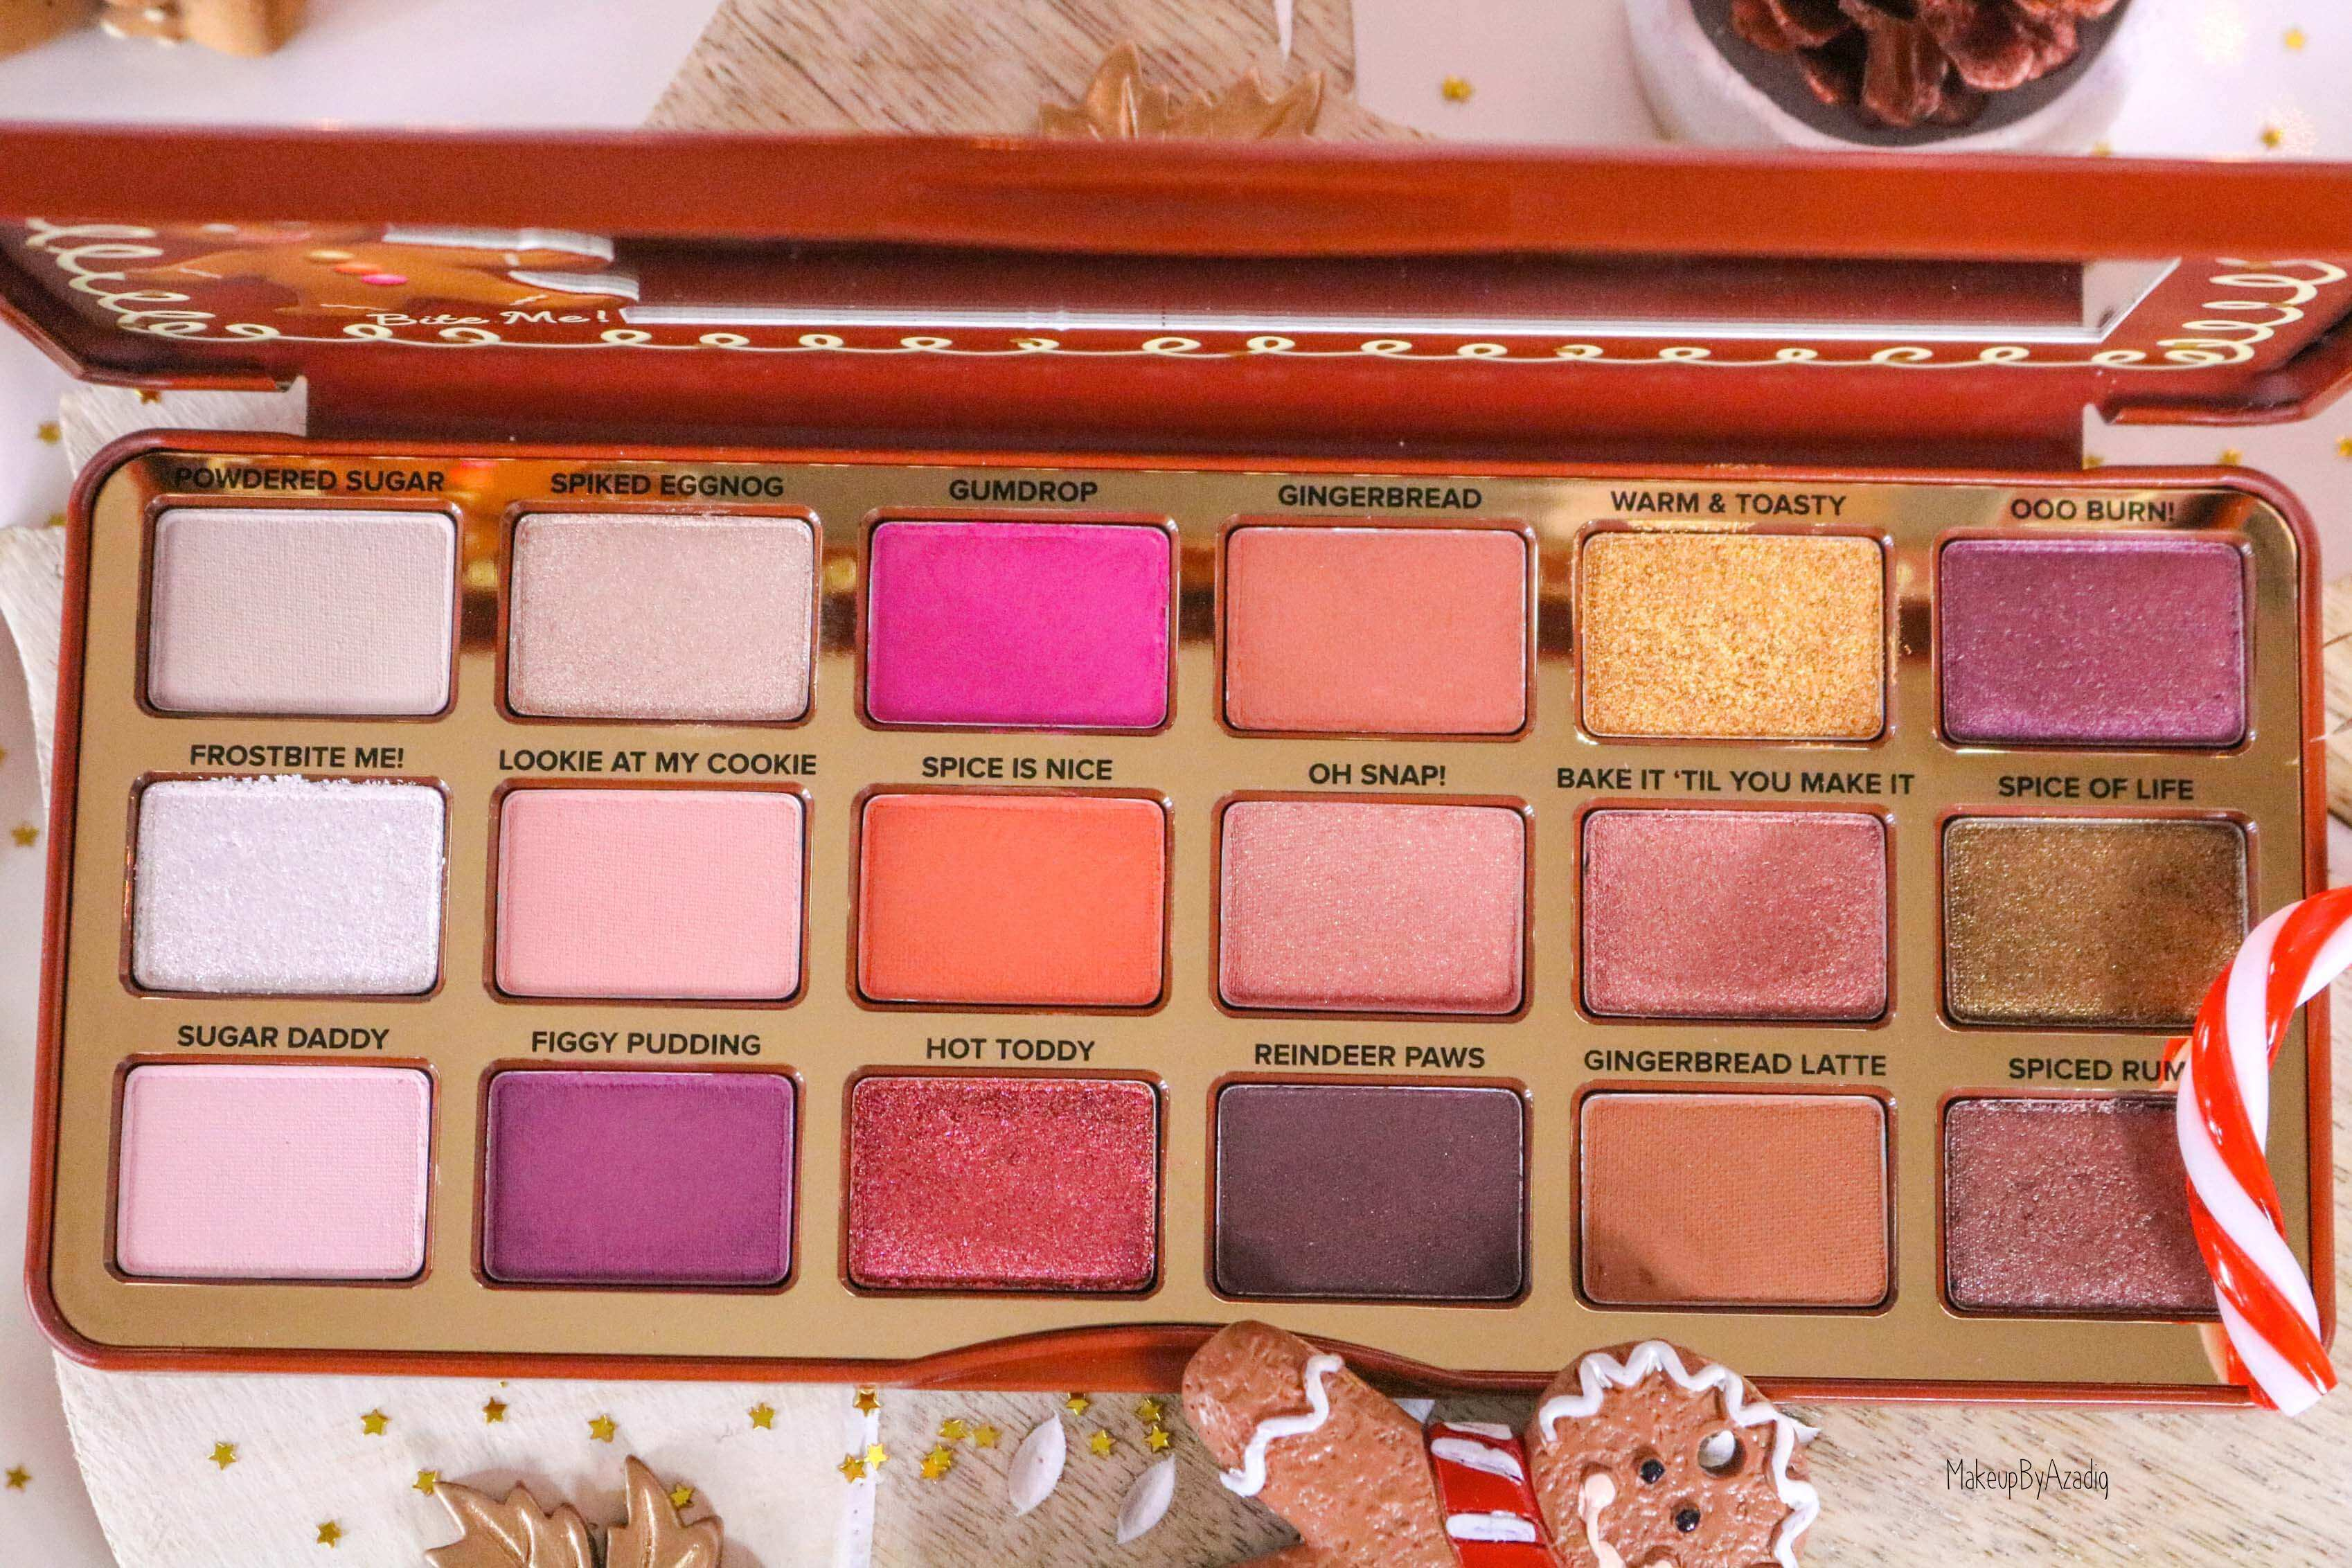 revue-palette-too-faced-gingerbread-spice-noel-france-makeupbyazadig-avis-prix-swatch-cute-couleurs